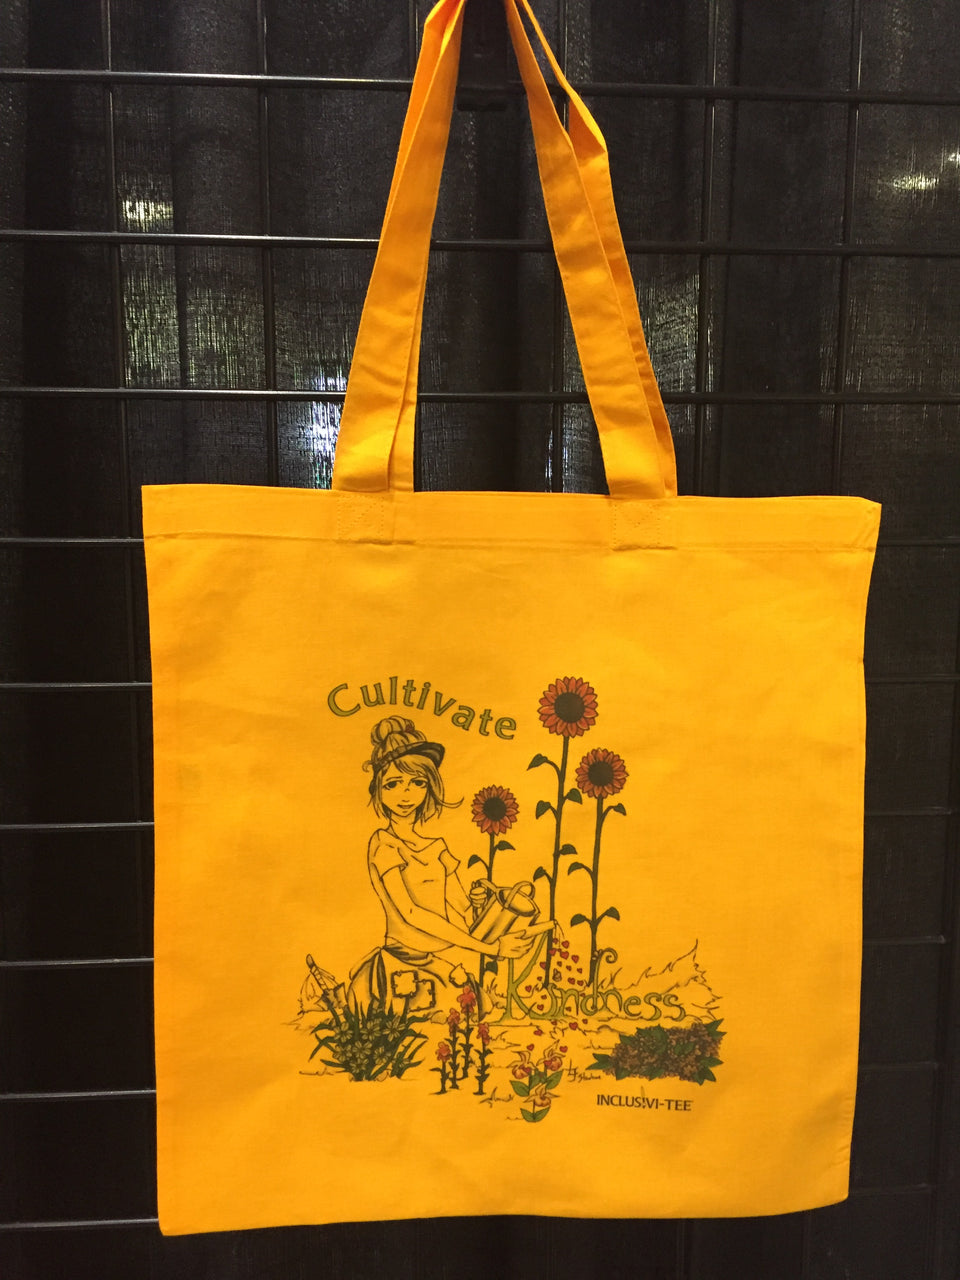 Cultivate Kindness Bag